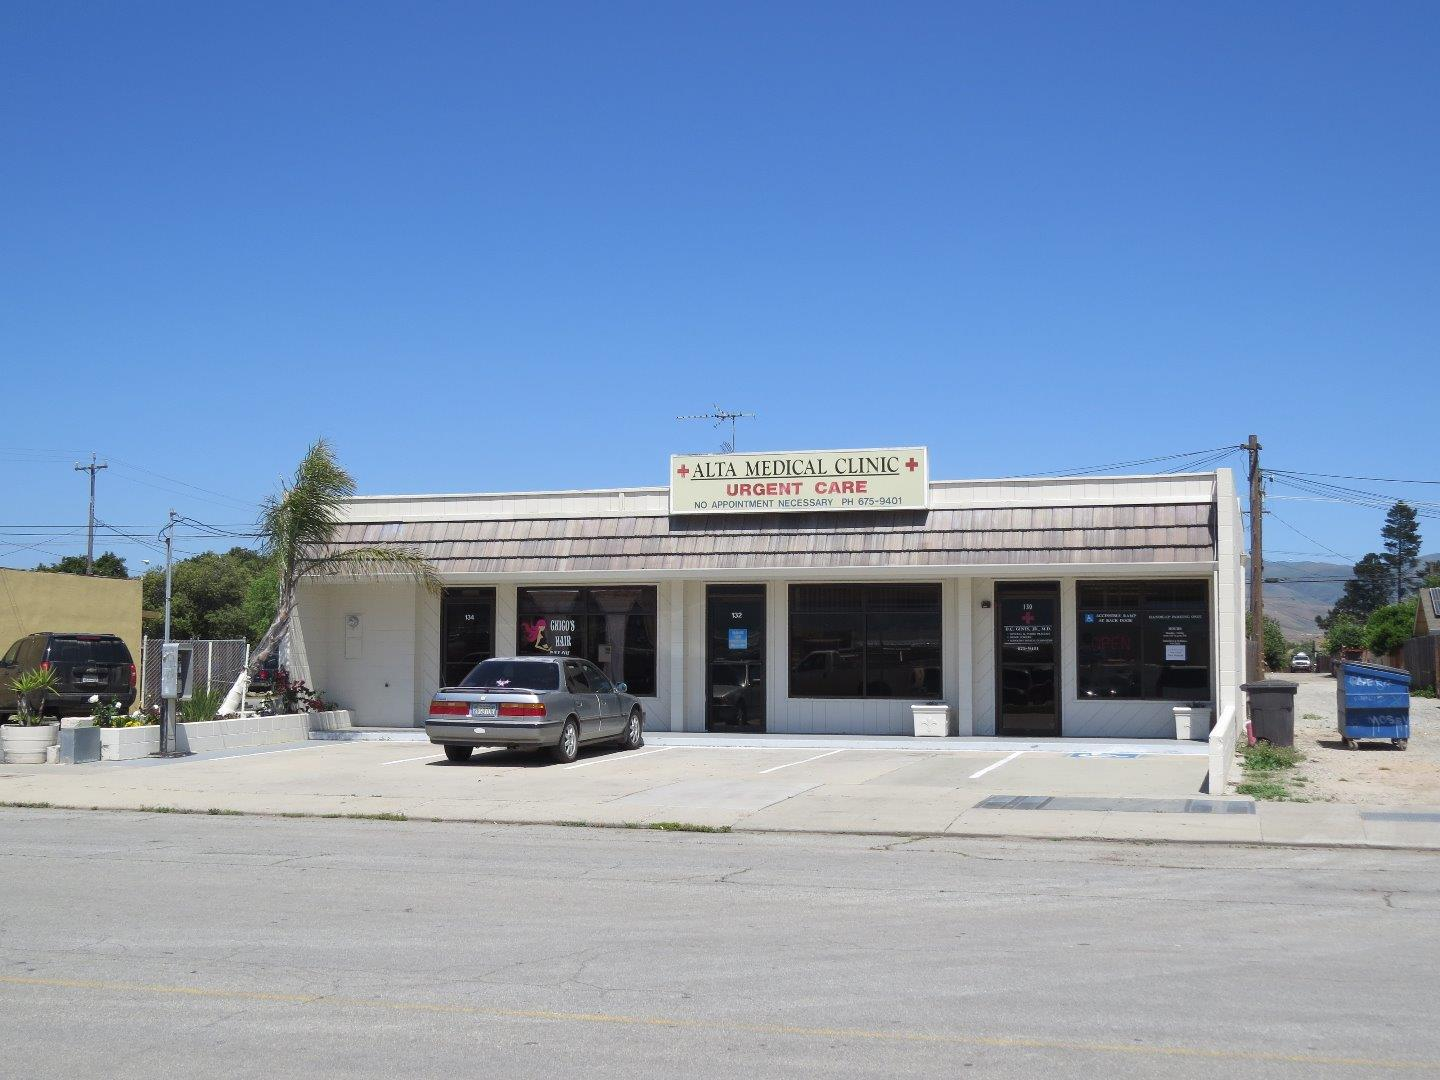 Commercial for Sale at 130 Alta Street Gonzales, California 93926 United States